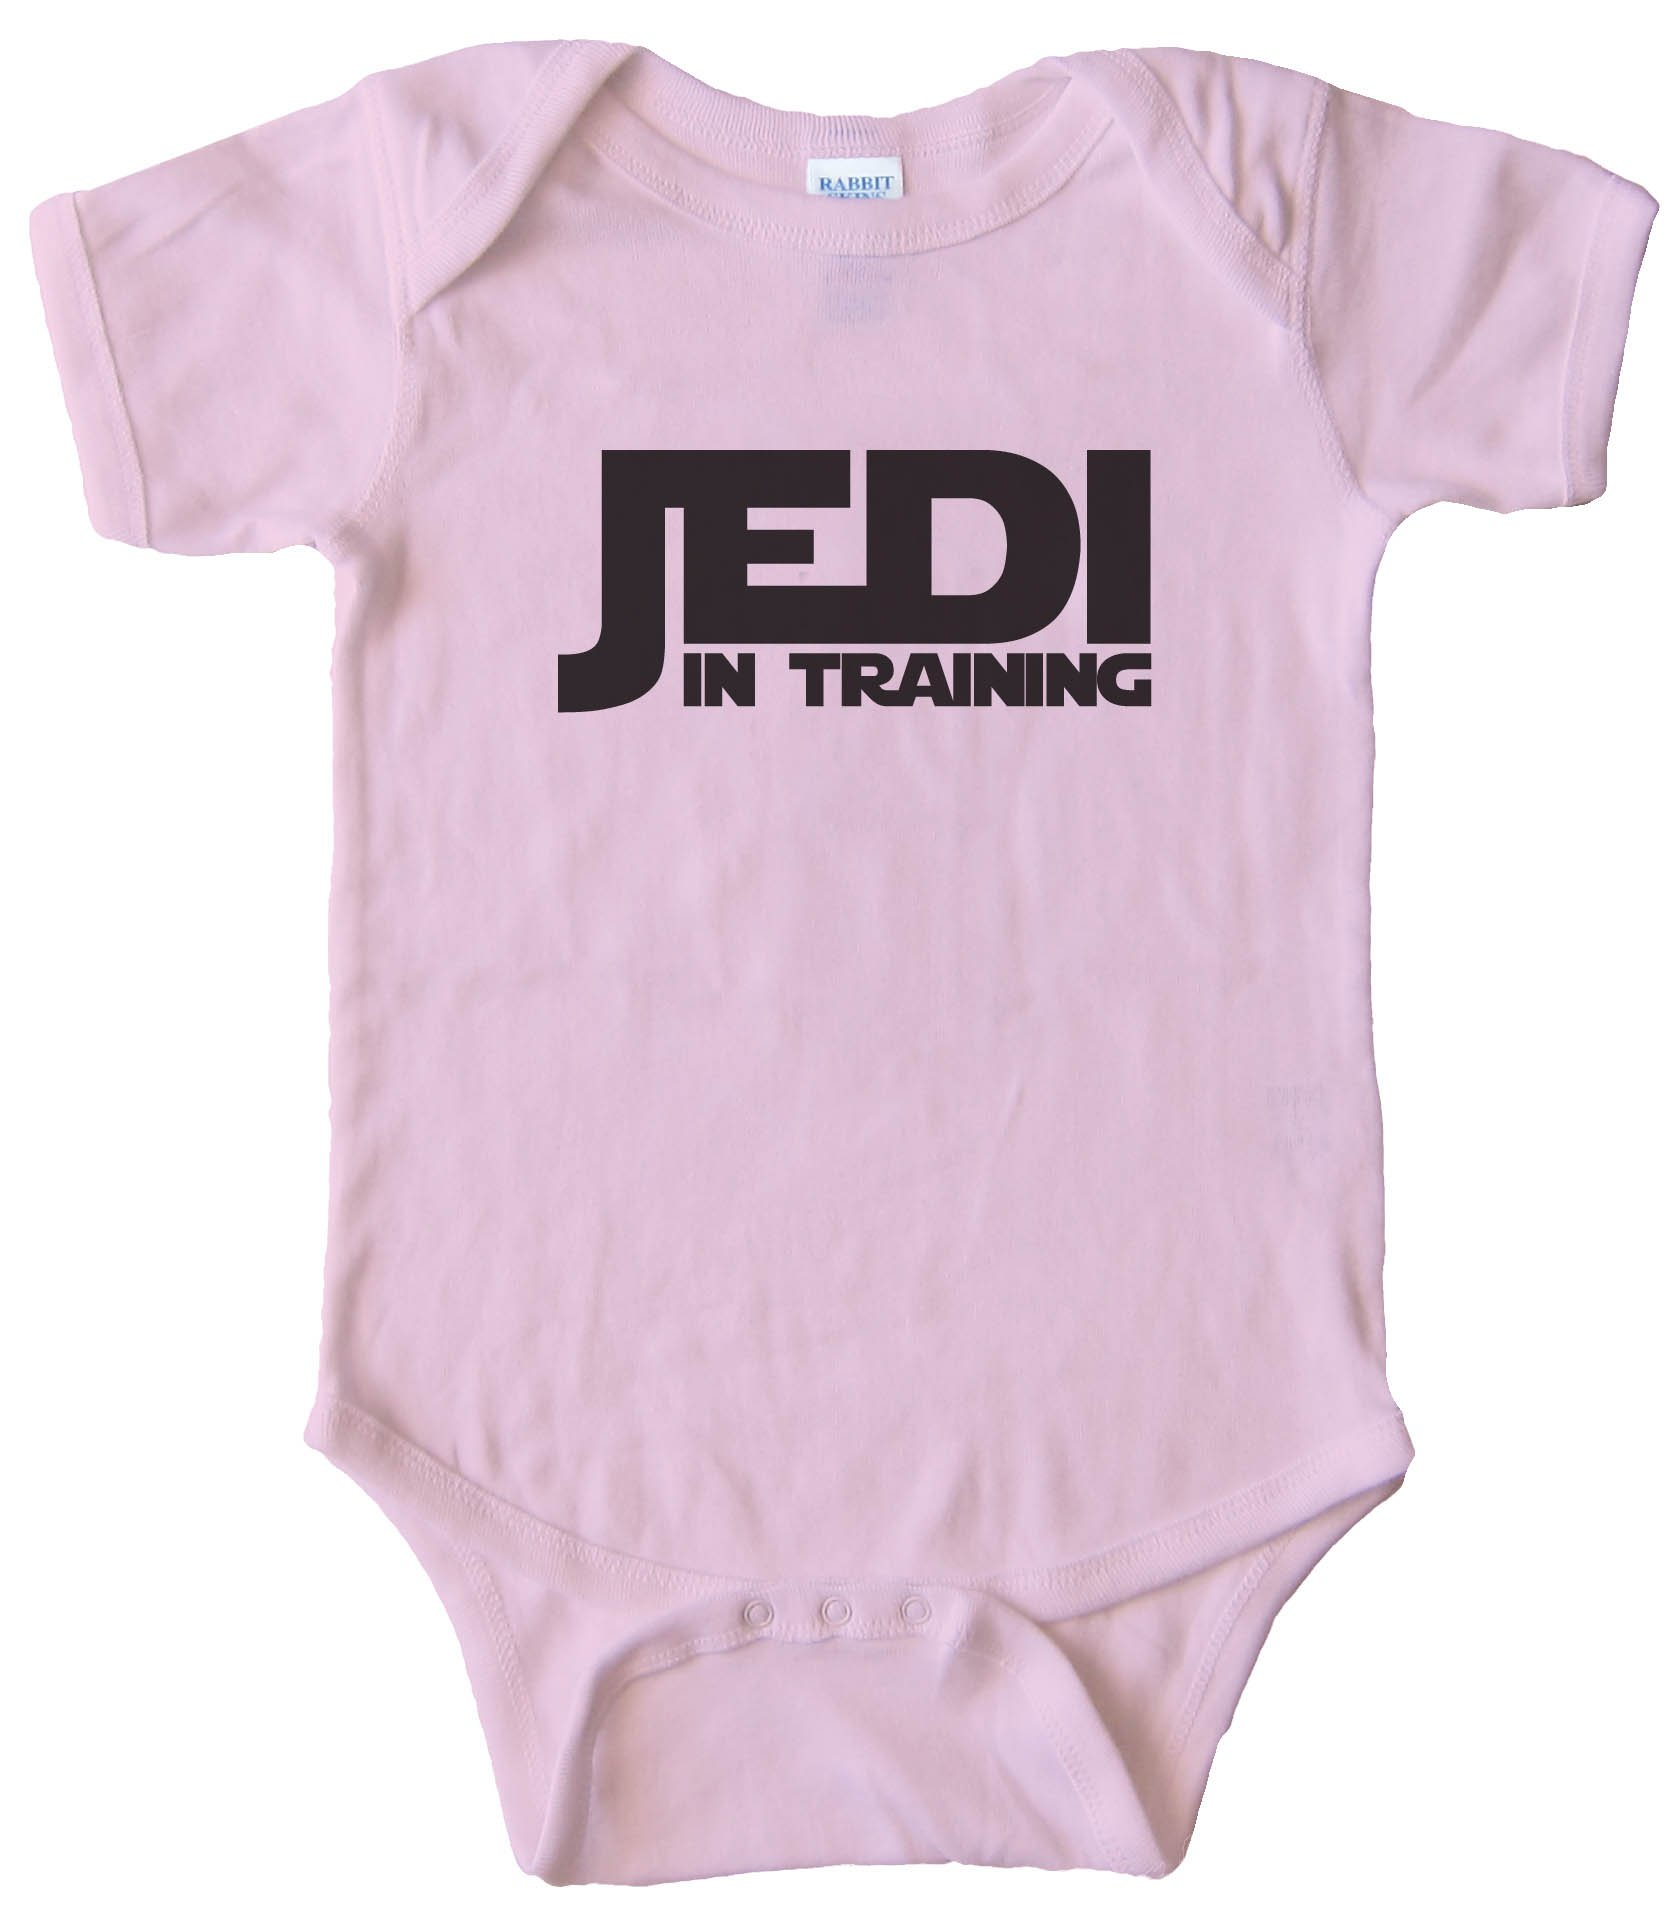 Jedi In Training - Baby Bodysuit